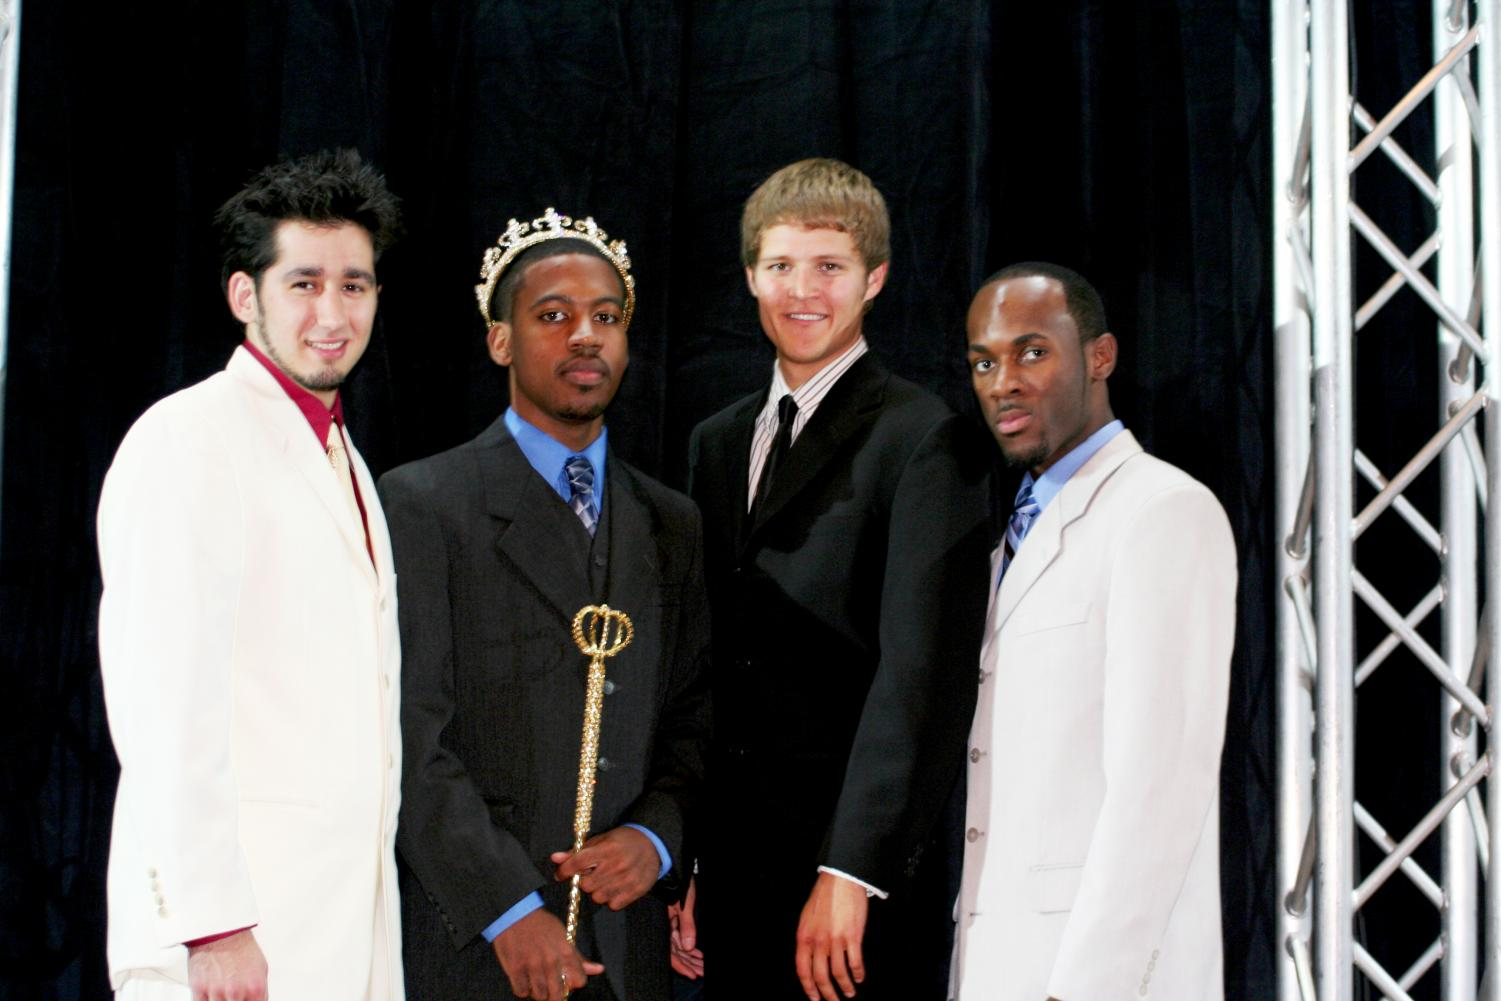 Late in October 2007 Jordan Beard, Michael Kyles, Skler Stroup and Corey Brown were among the first contestants to vie for the title of Mr. Southeastern. Back then, Kyles won over the audience and the judges to be the first to hold the title. This year the pageant returns for both fun and a good cause.